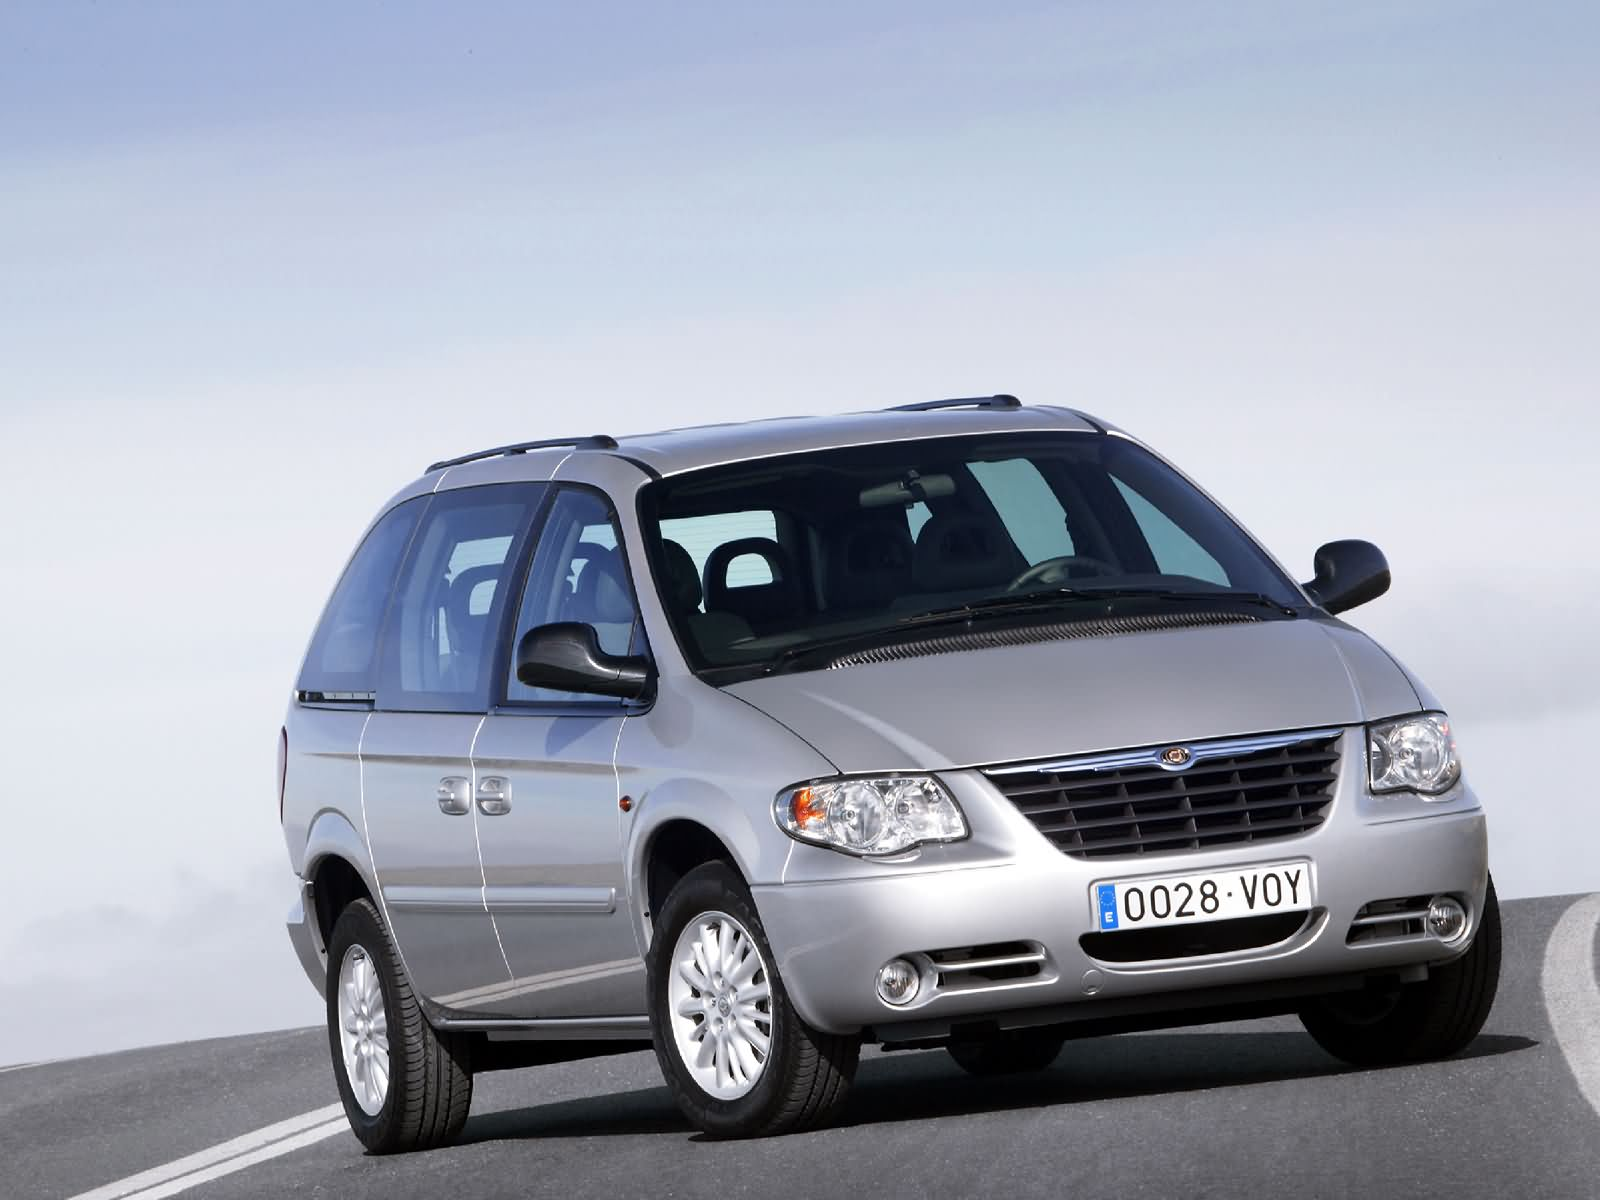 Chrysler Voyager LX 2.8 CRD European Version 2004 3